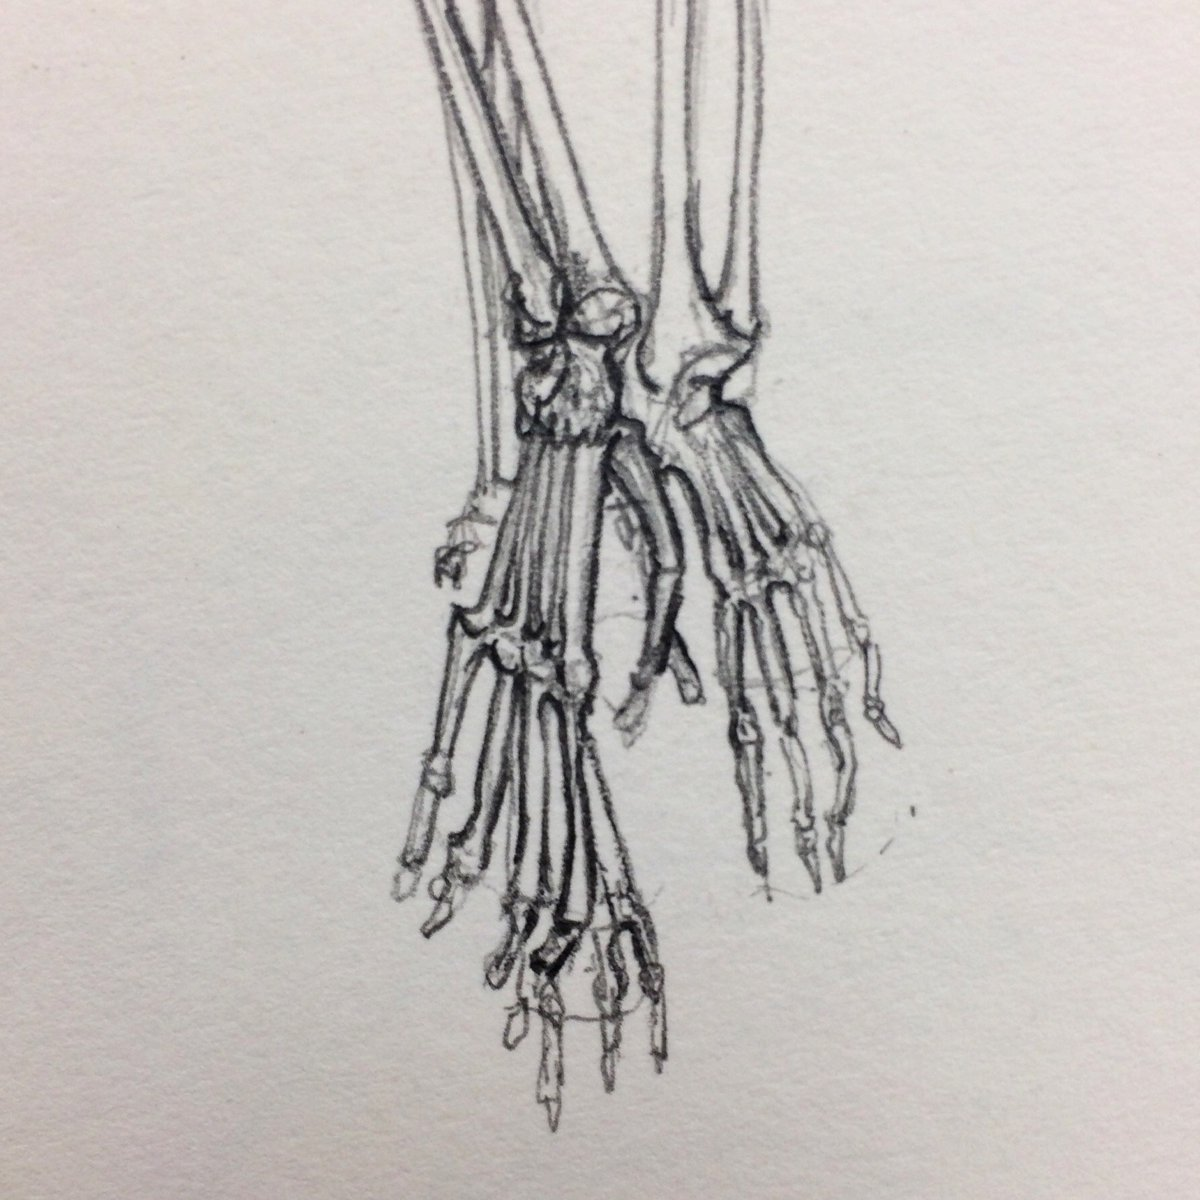 #sketchbook #illustration #pencil #handdrawn #skeleton #specimen #gibbon #hand #feet #zoology #pathology #primatology #morphology #cambridge #museum #work #myart #anatomy #notamonkey #brachiation #naturalhistory #anatomicaldrawing #macabre #criticallyendangered #voiseydrawing